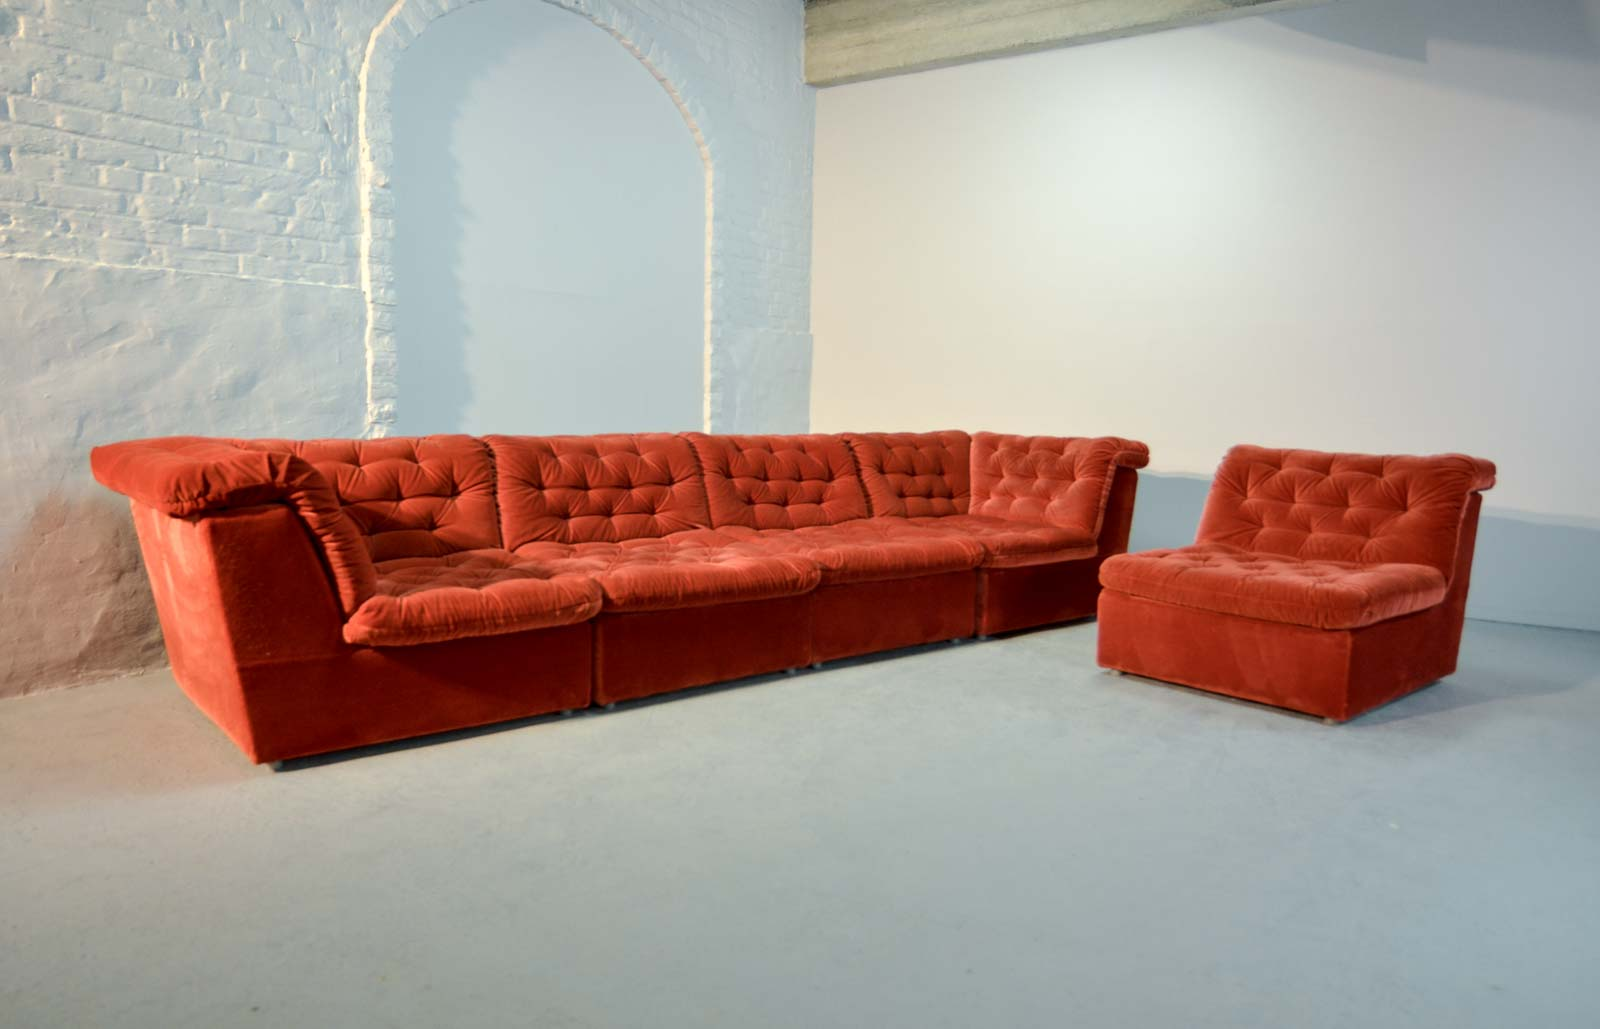 bright sofa fabric protection for new mid century vermilion red velvet 1970s modular